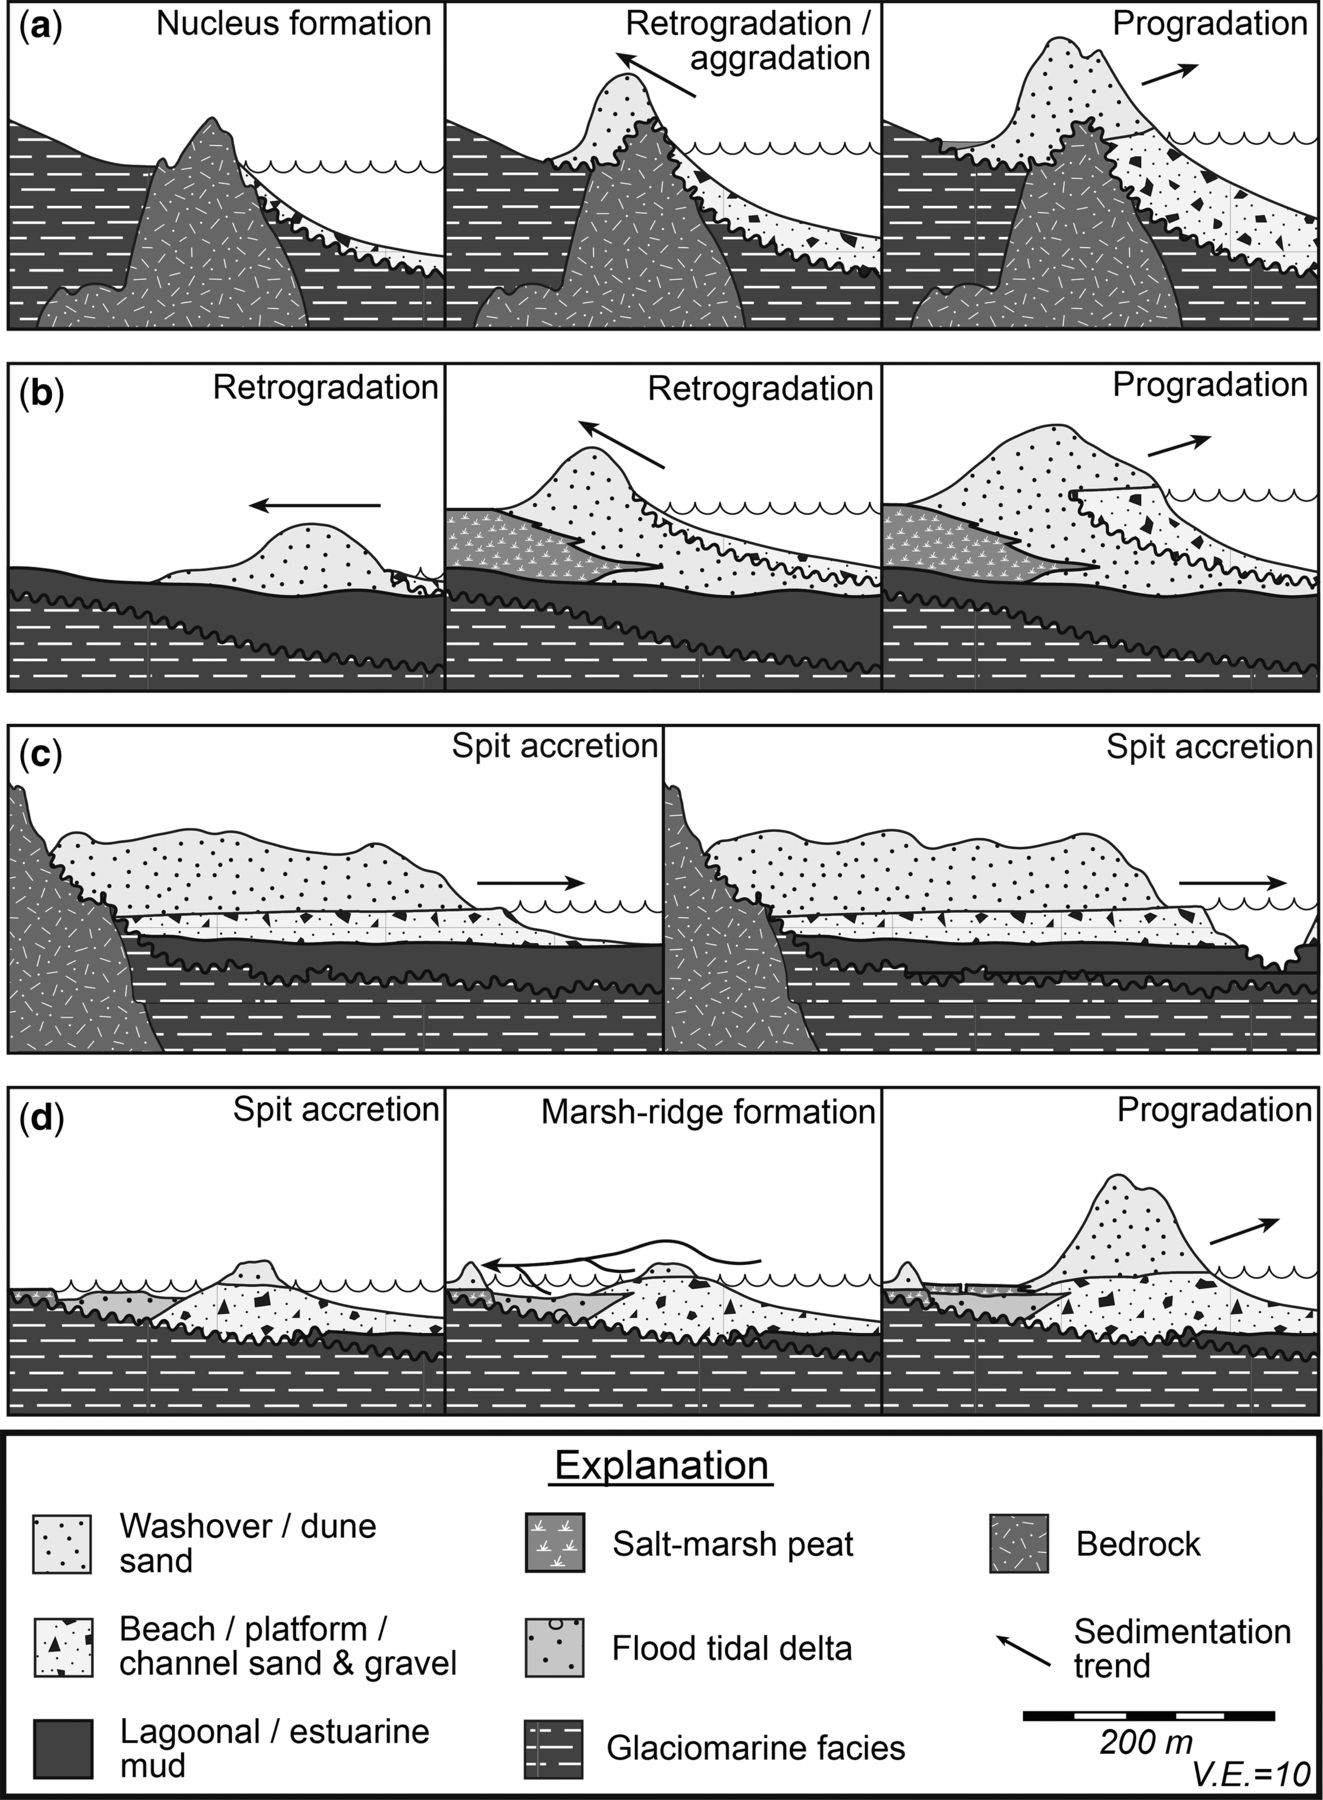 Evolution of paraglacial coasts in response to changes in